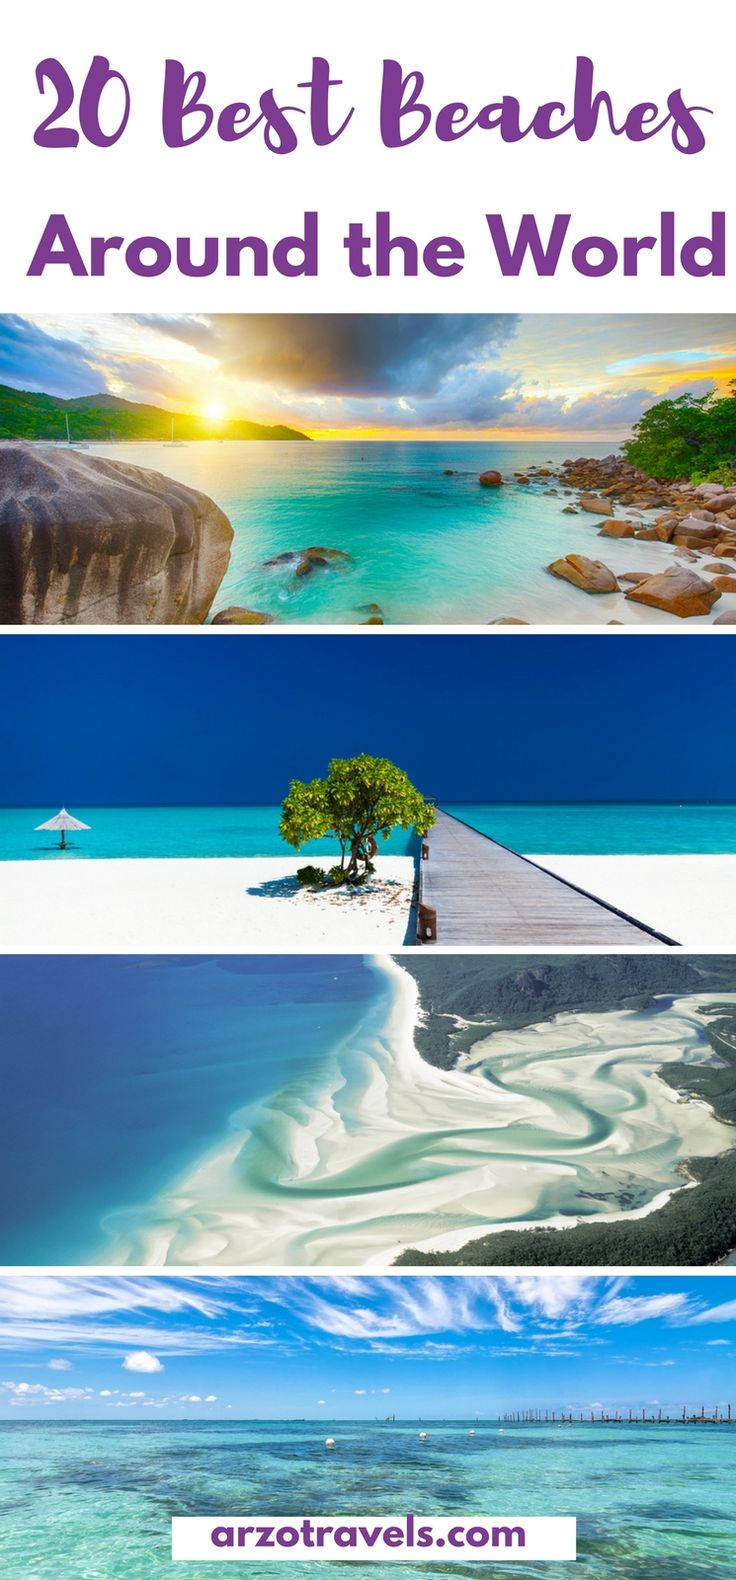 Bucket List: 20 amazing beaches around the world - from Europe, to the USA, Australia, Africa, South America, Maldives and more great beaches.